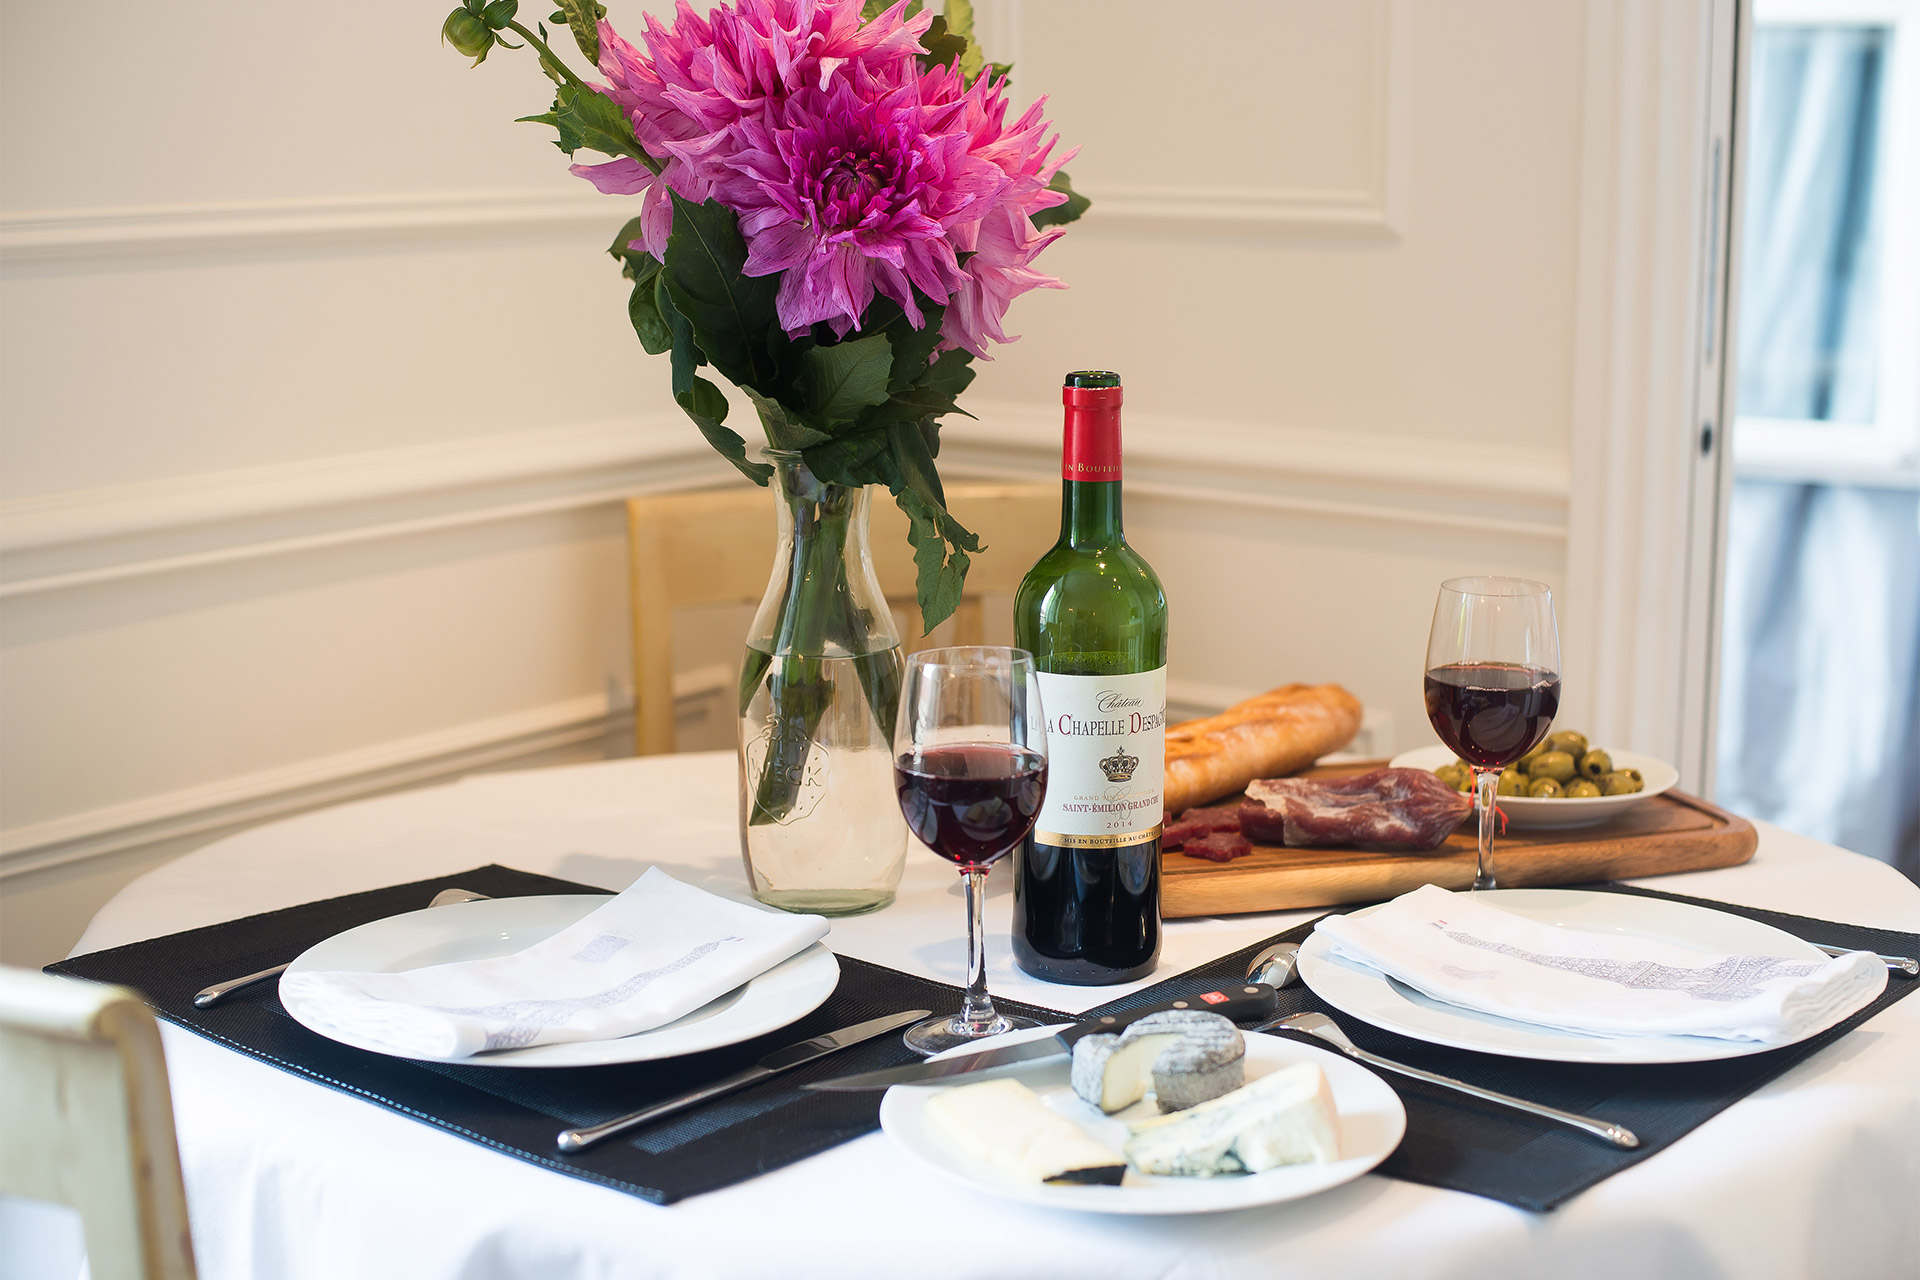 Treat your special someone to a romantic French dinner at home